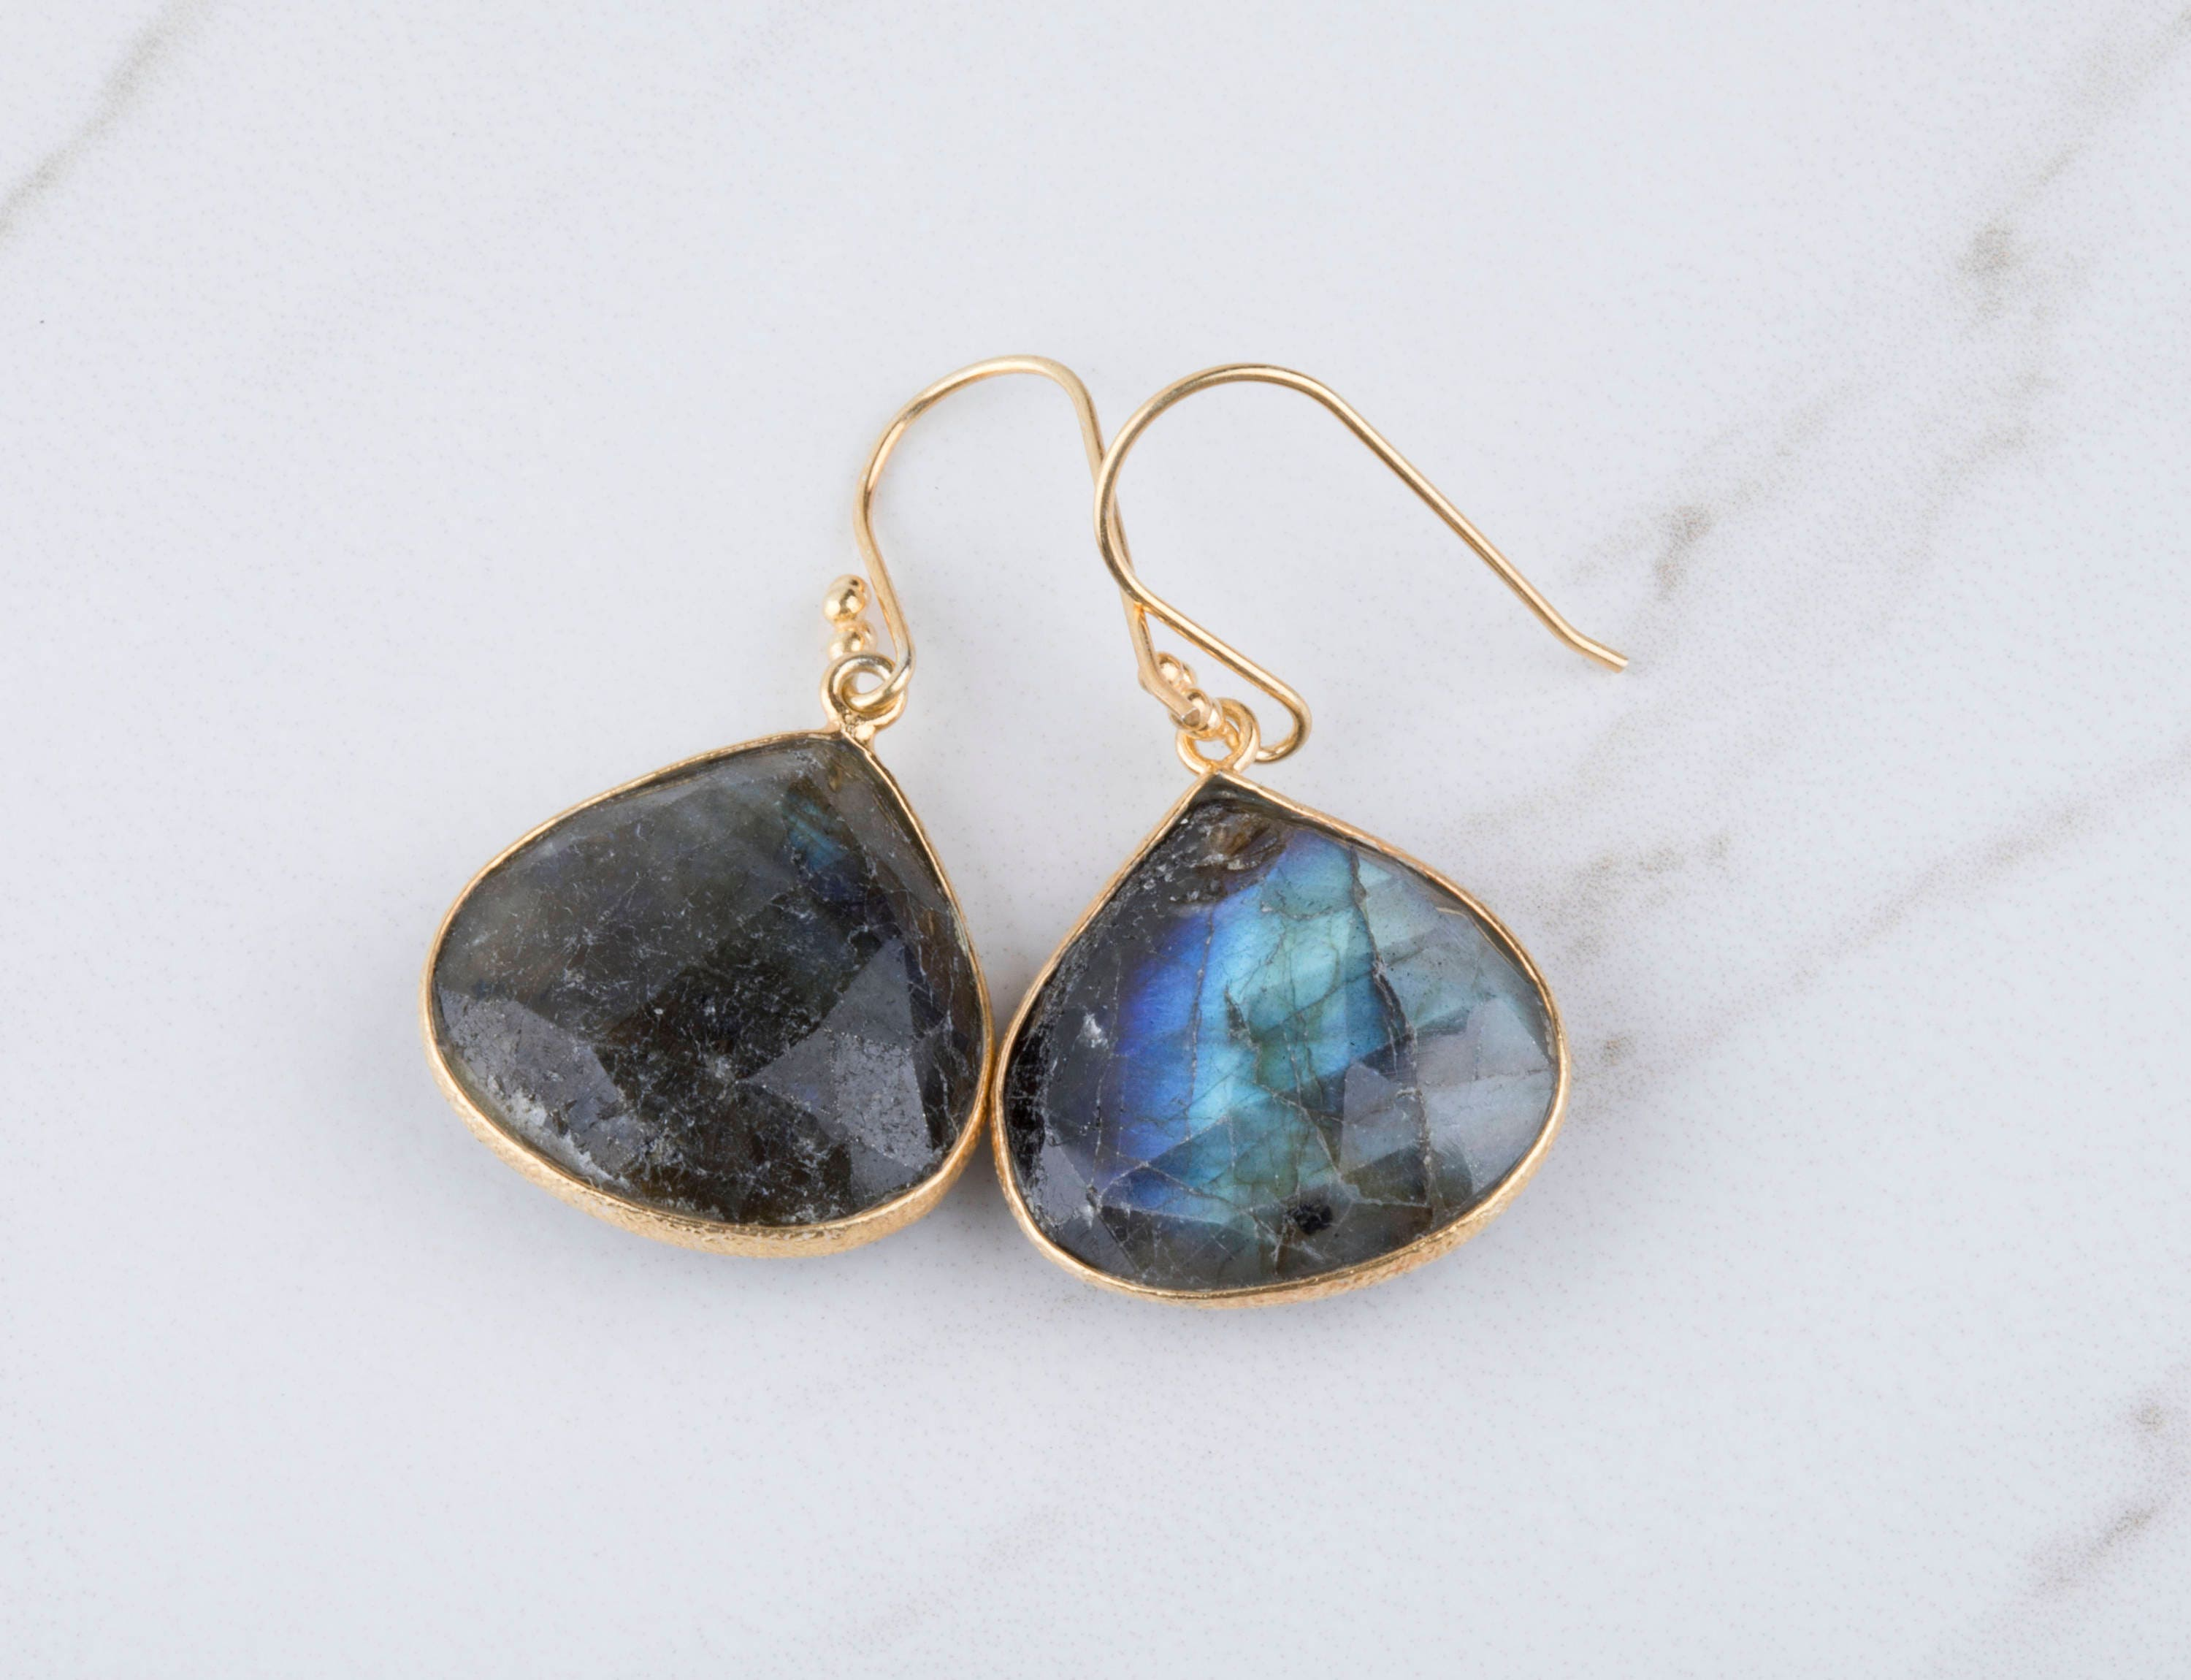 earrings maria pin pinterest twitterpation beaulieu labradorite